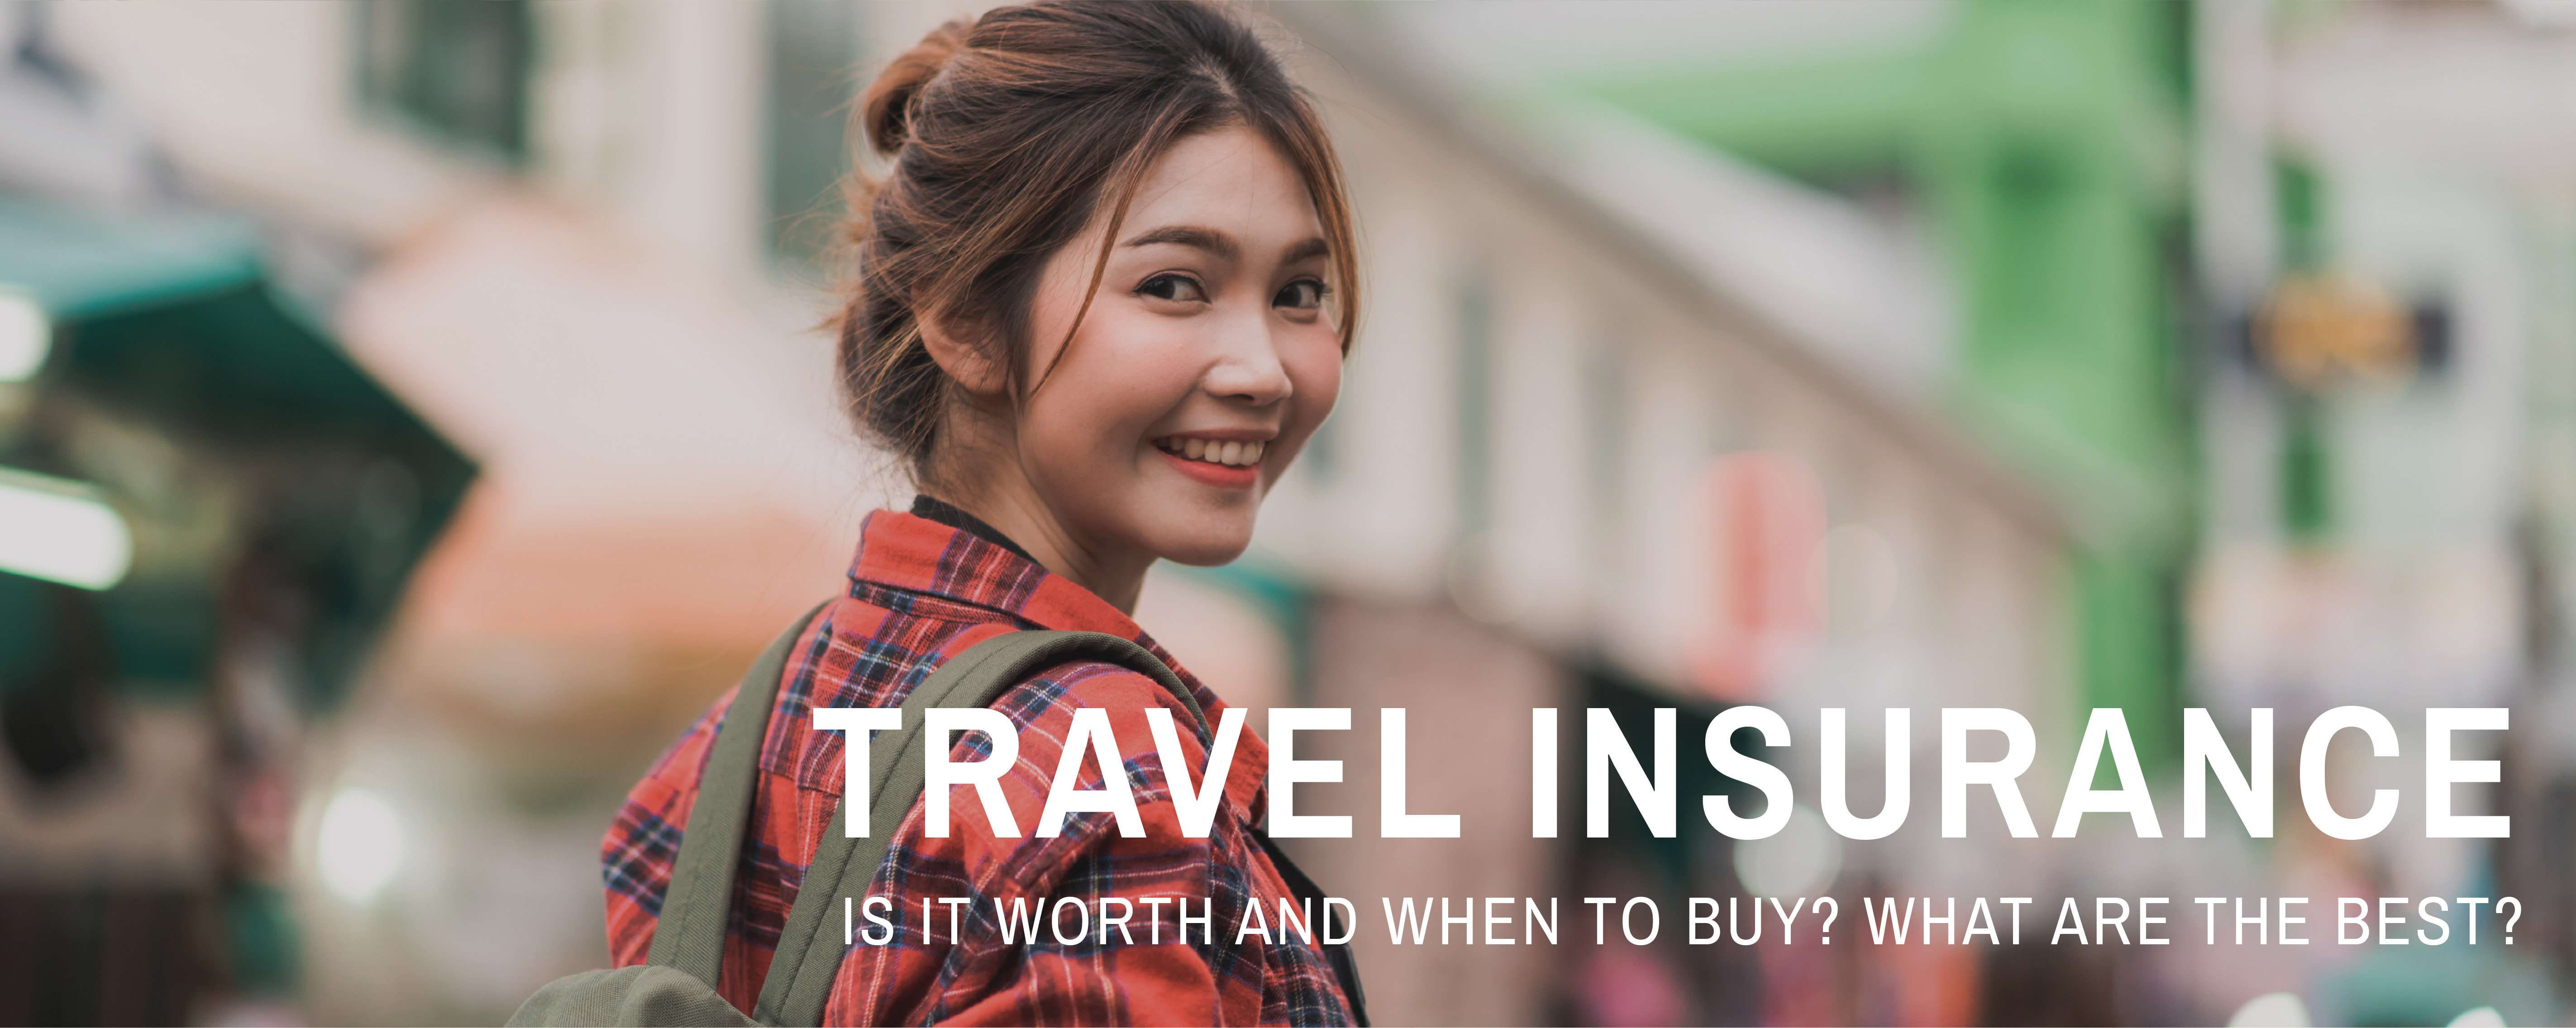 Travel Insurance- Is it worth and when to buy? What are the best?